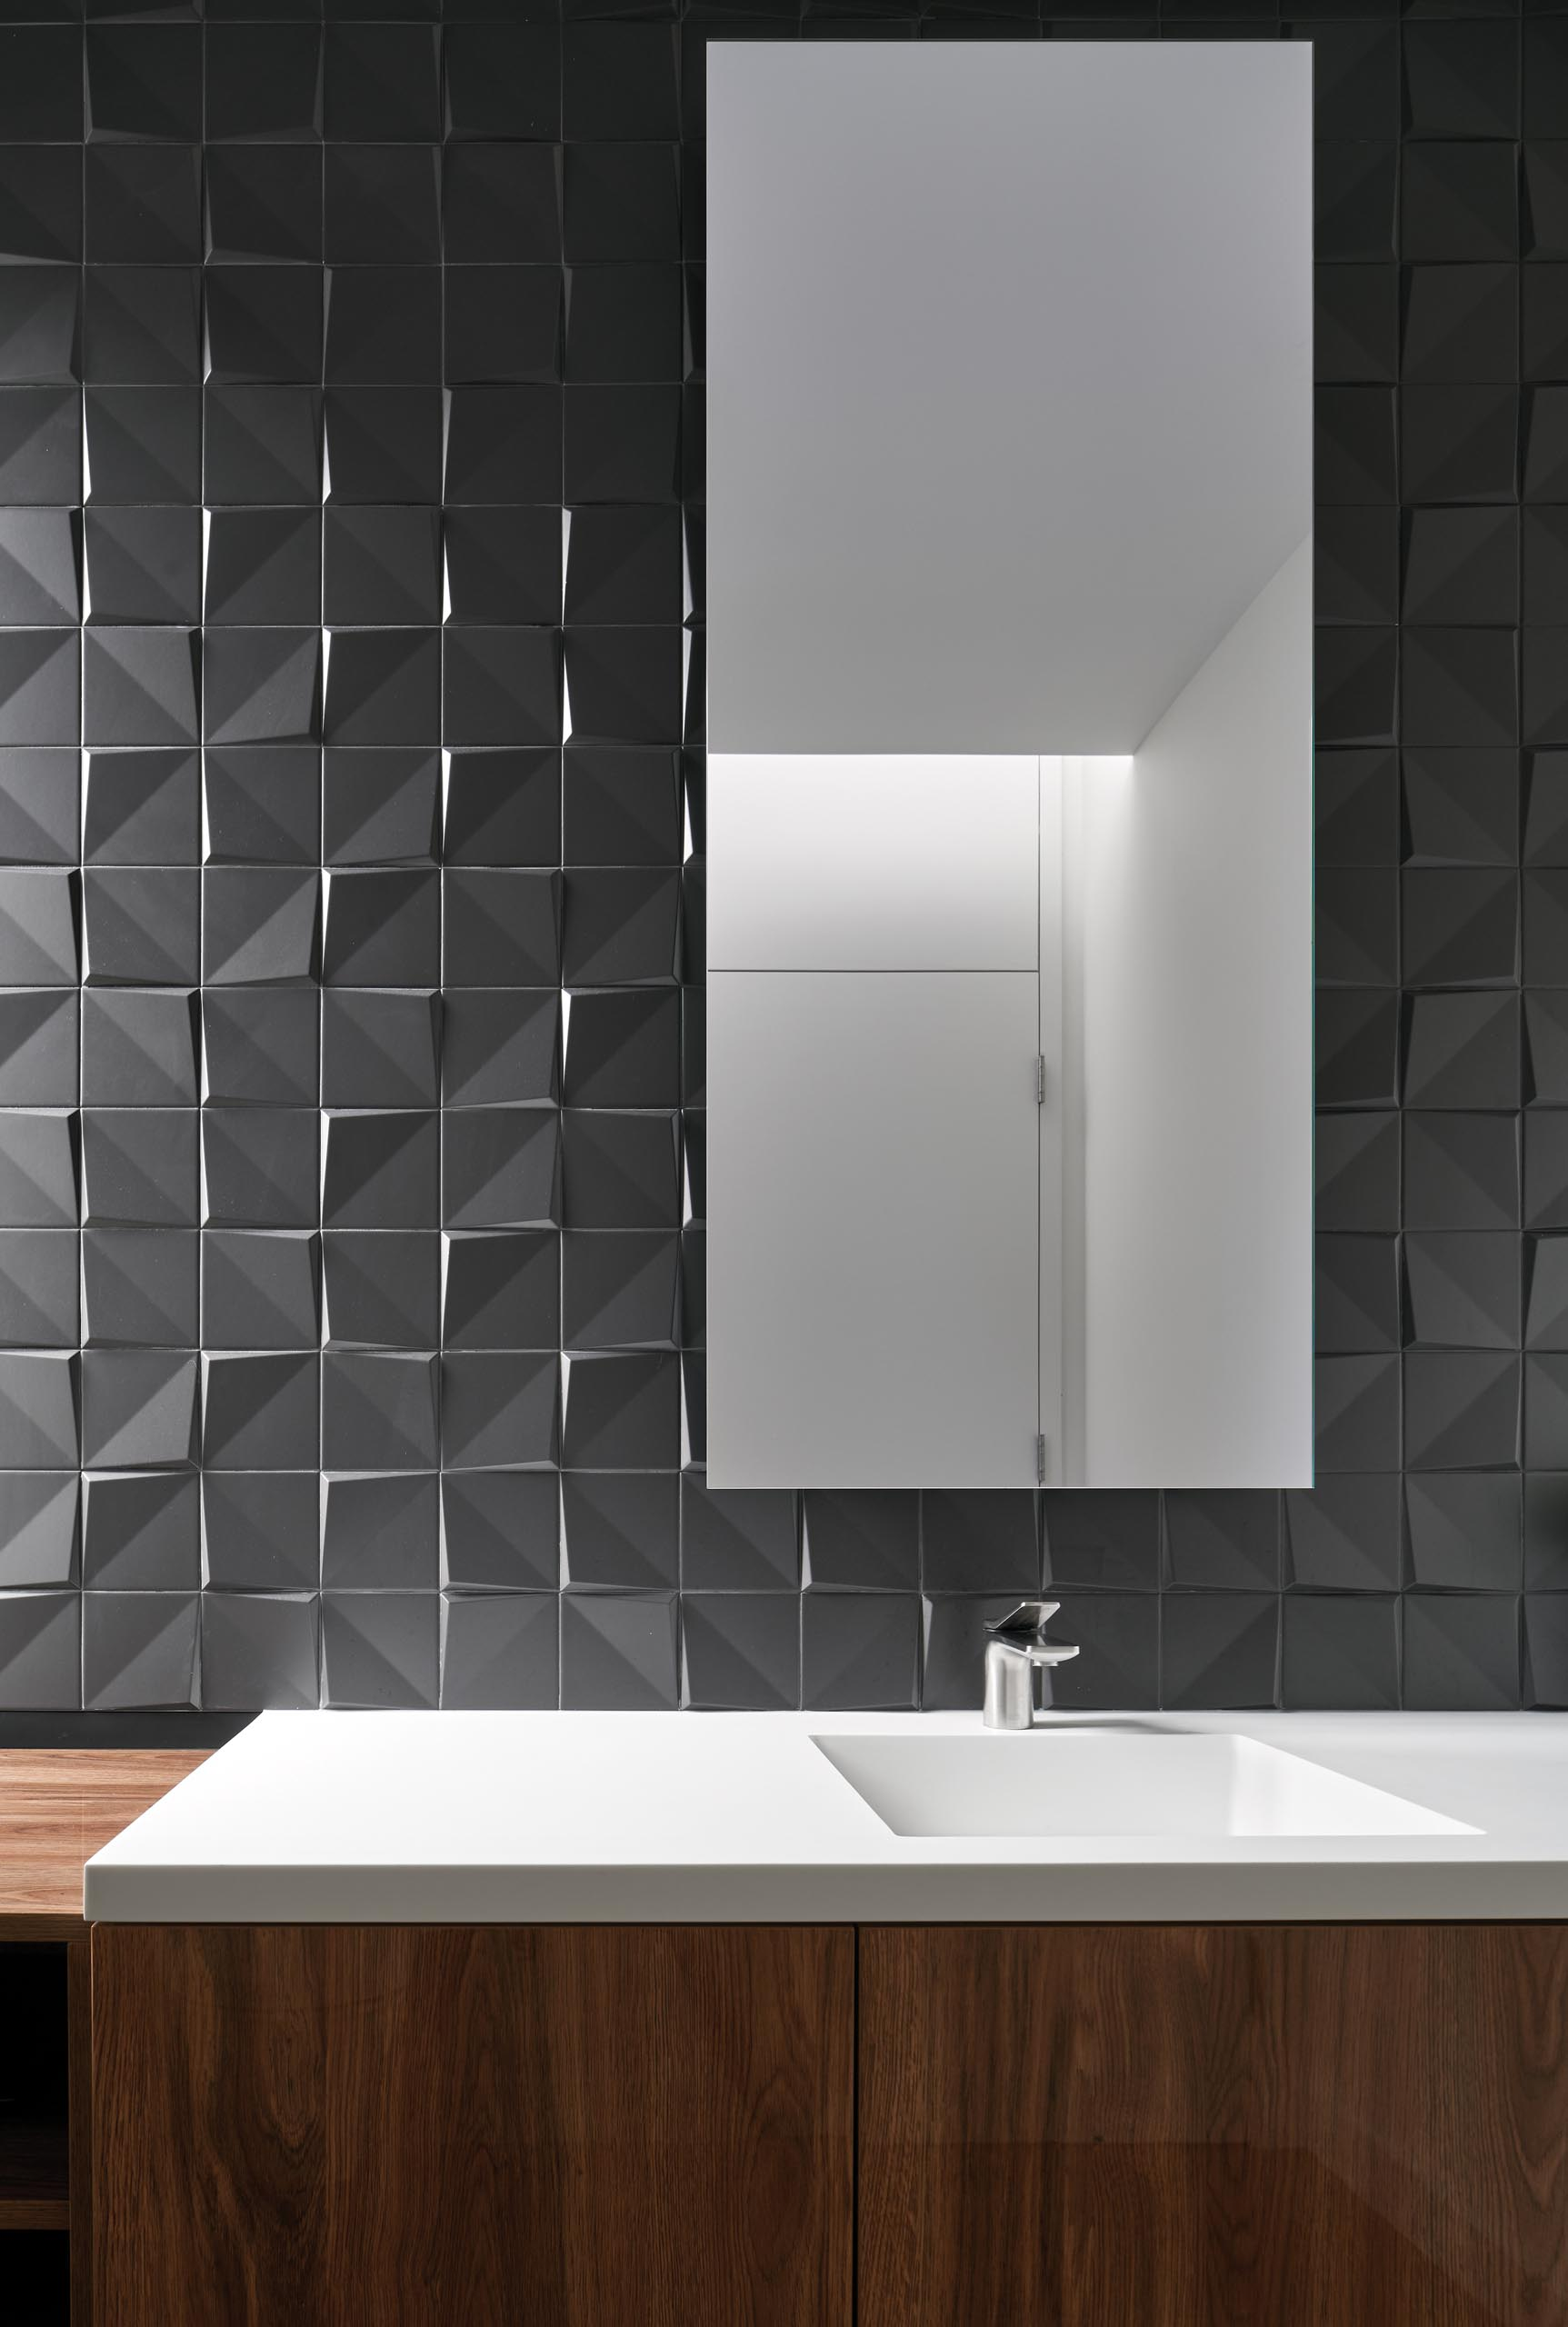 A modern grey and wood bathroom with 3-dimensional tiles that add texture to the wall.